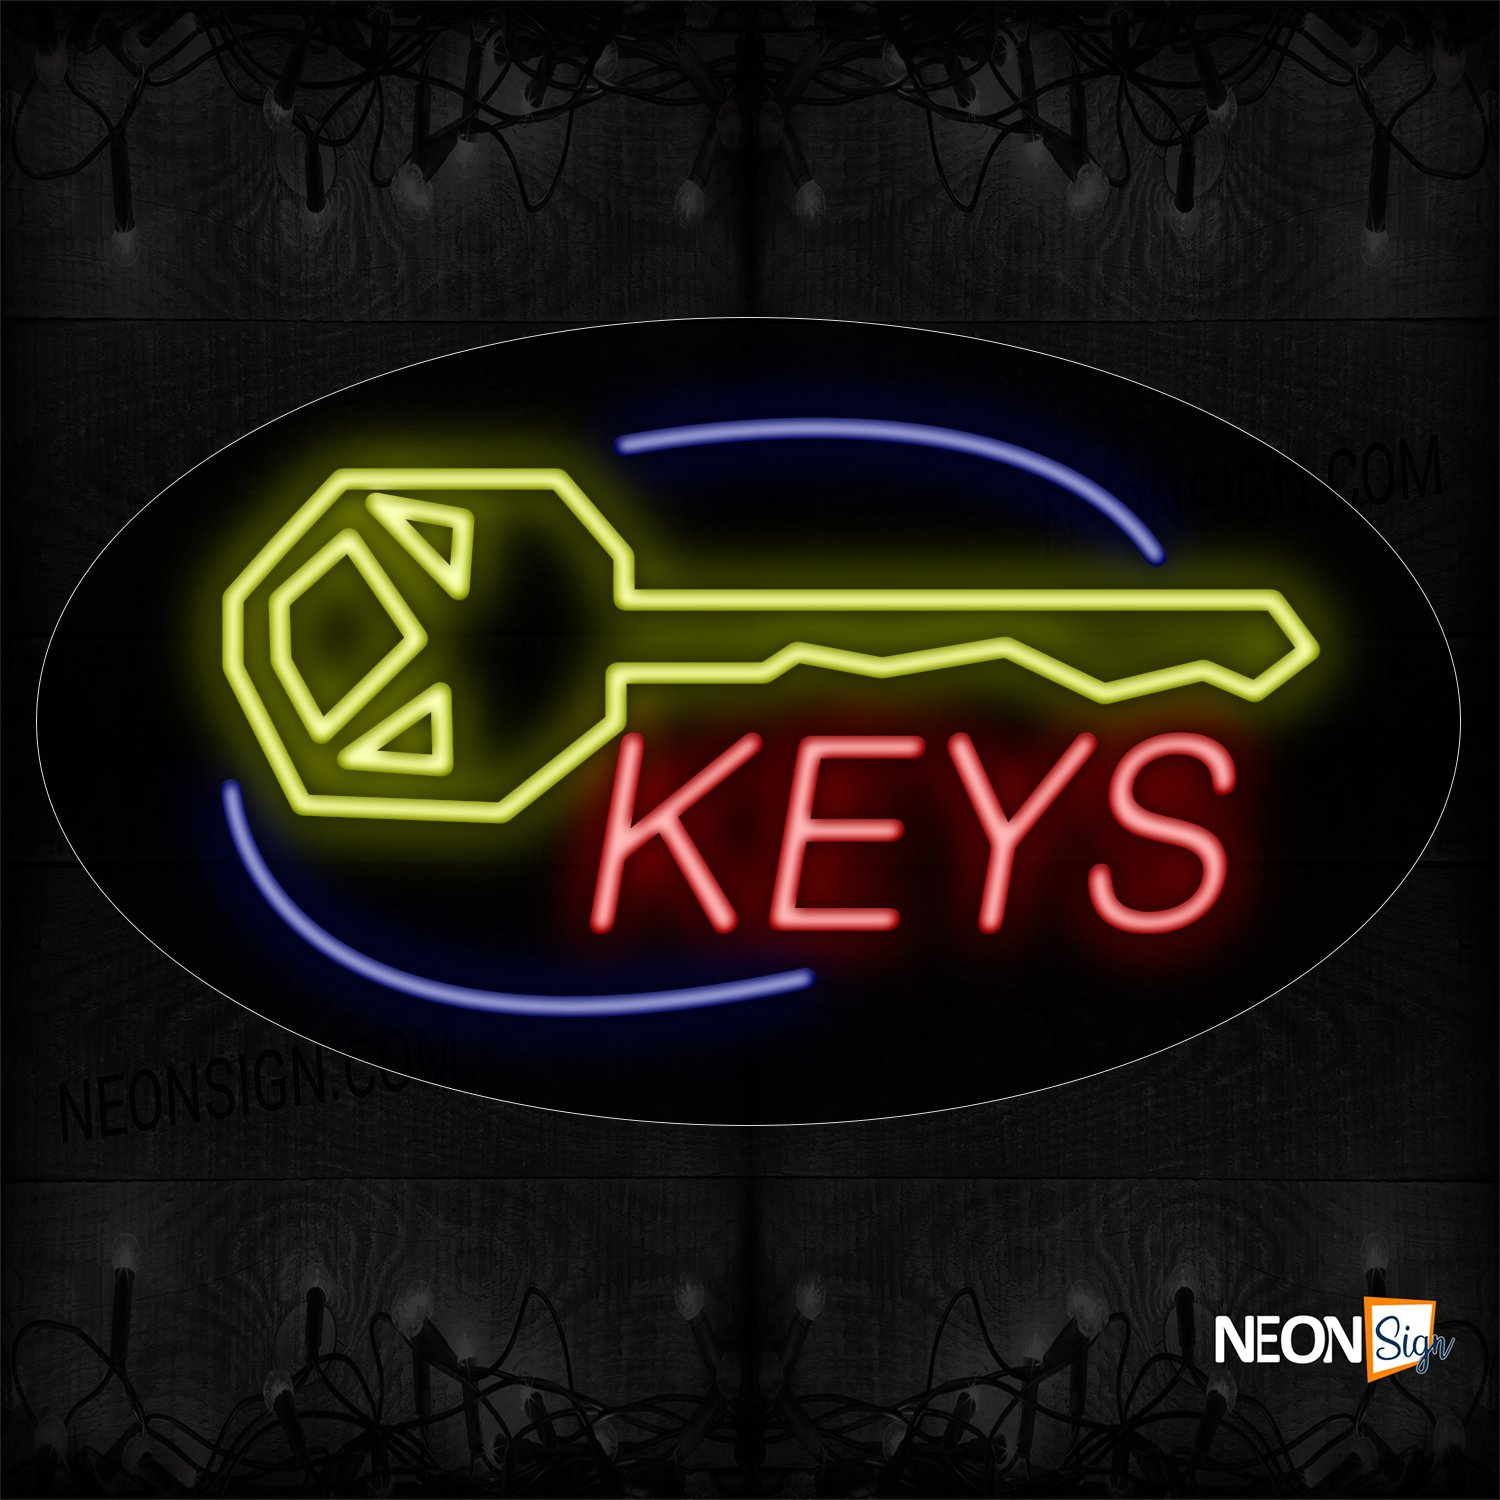 Image of 14111 Keys With Key Logo & Arc Border Neon Sign_17x30 Contoured Black Backing